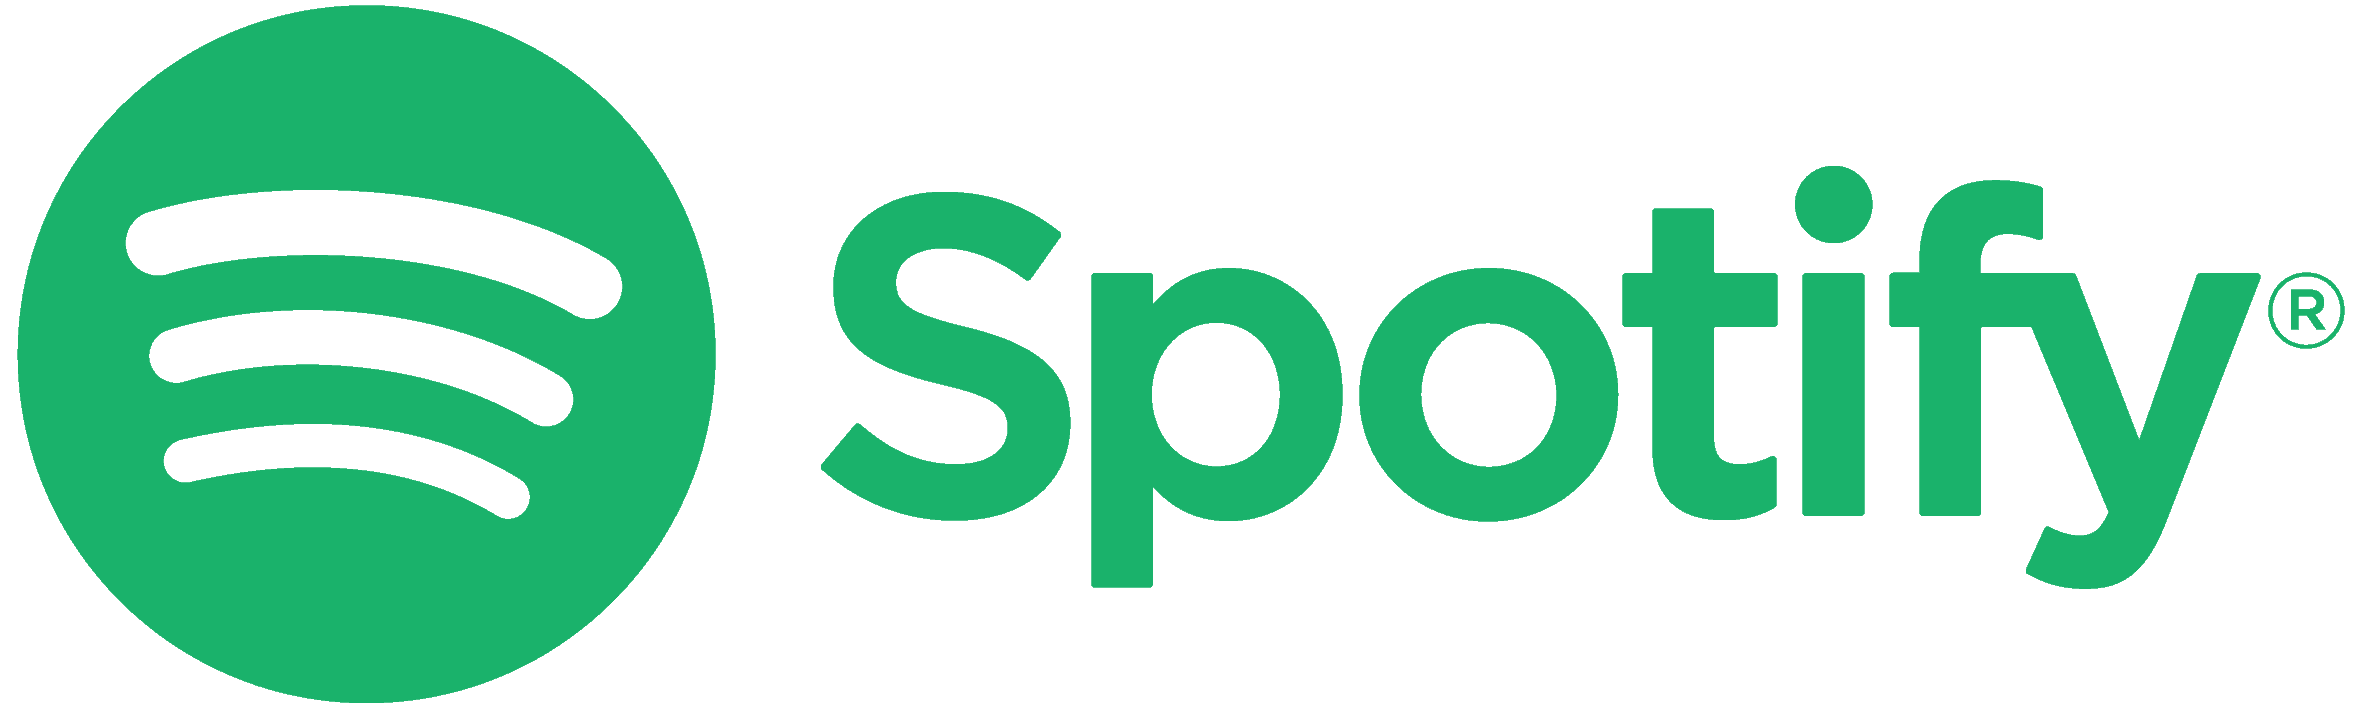 Spotify student discount logo